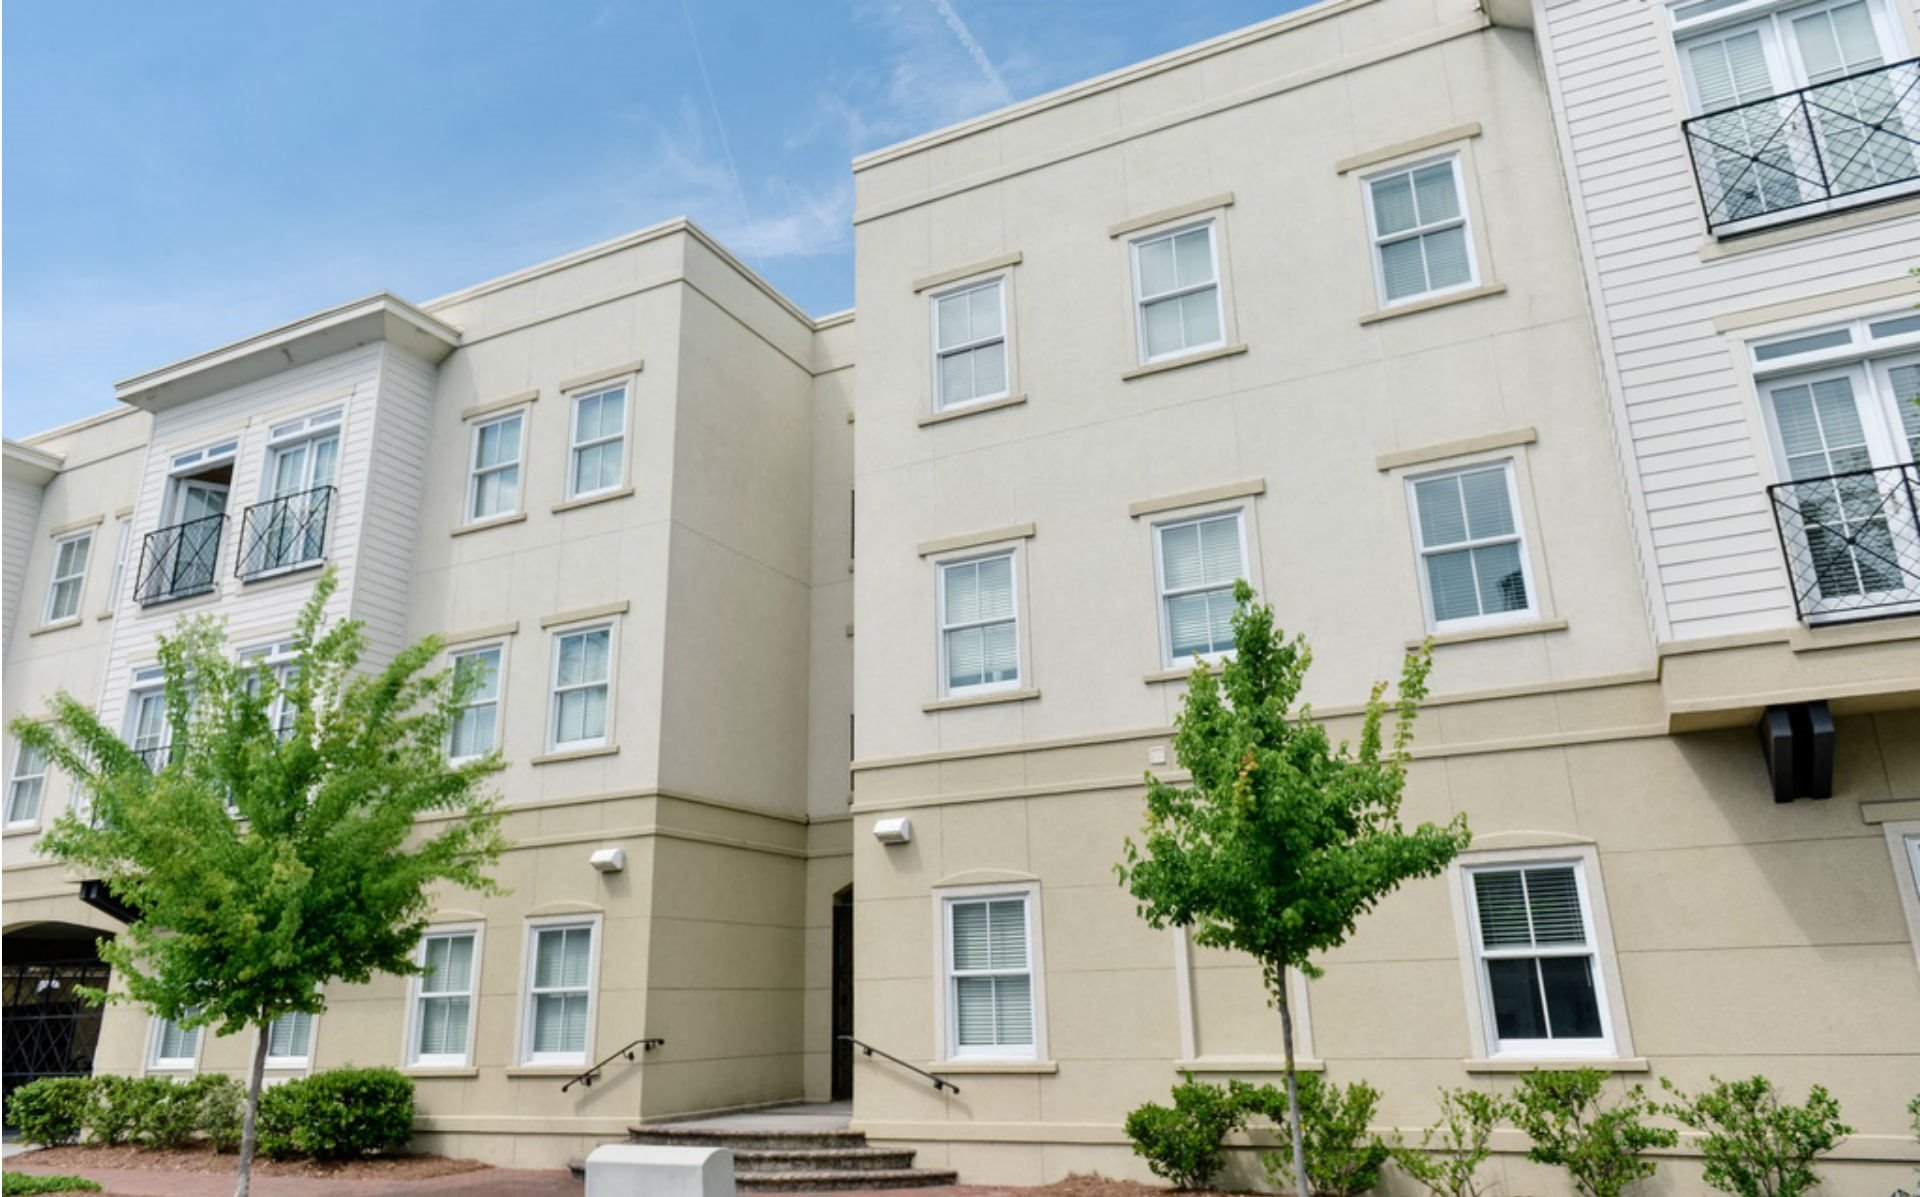 Alice hall apartments in savannah ga for Apartments near savannah college of art and design